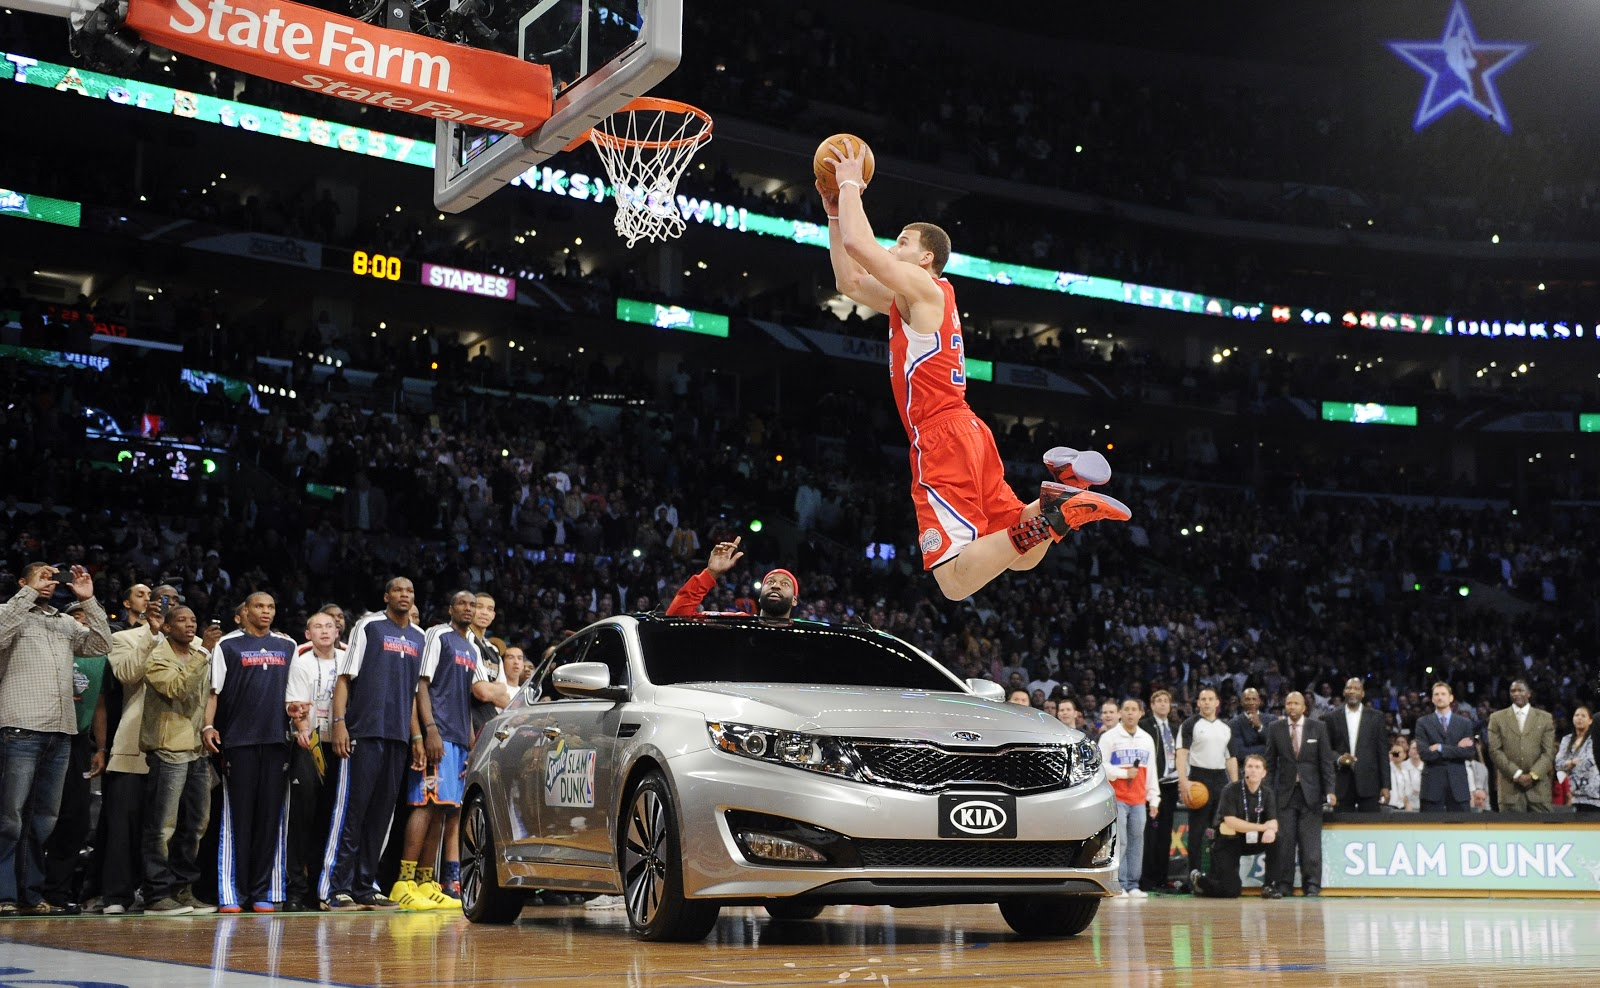 Derrick Rose Dunk On Lebron James Wallpaper NBA All Star We